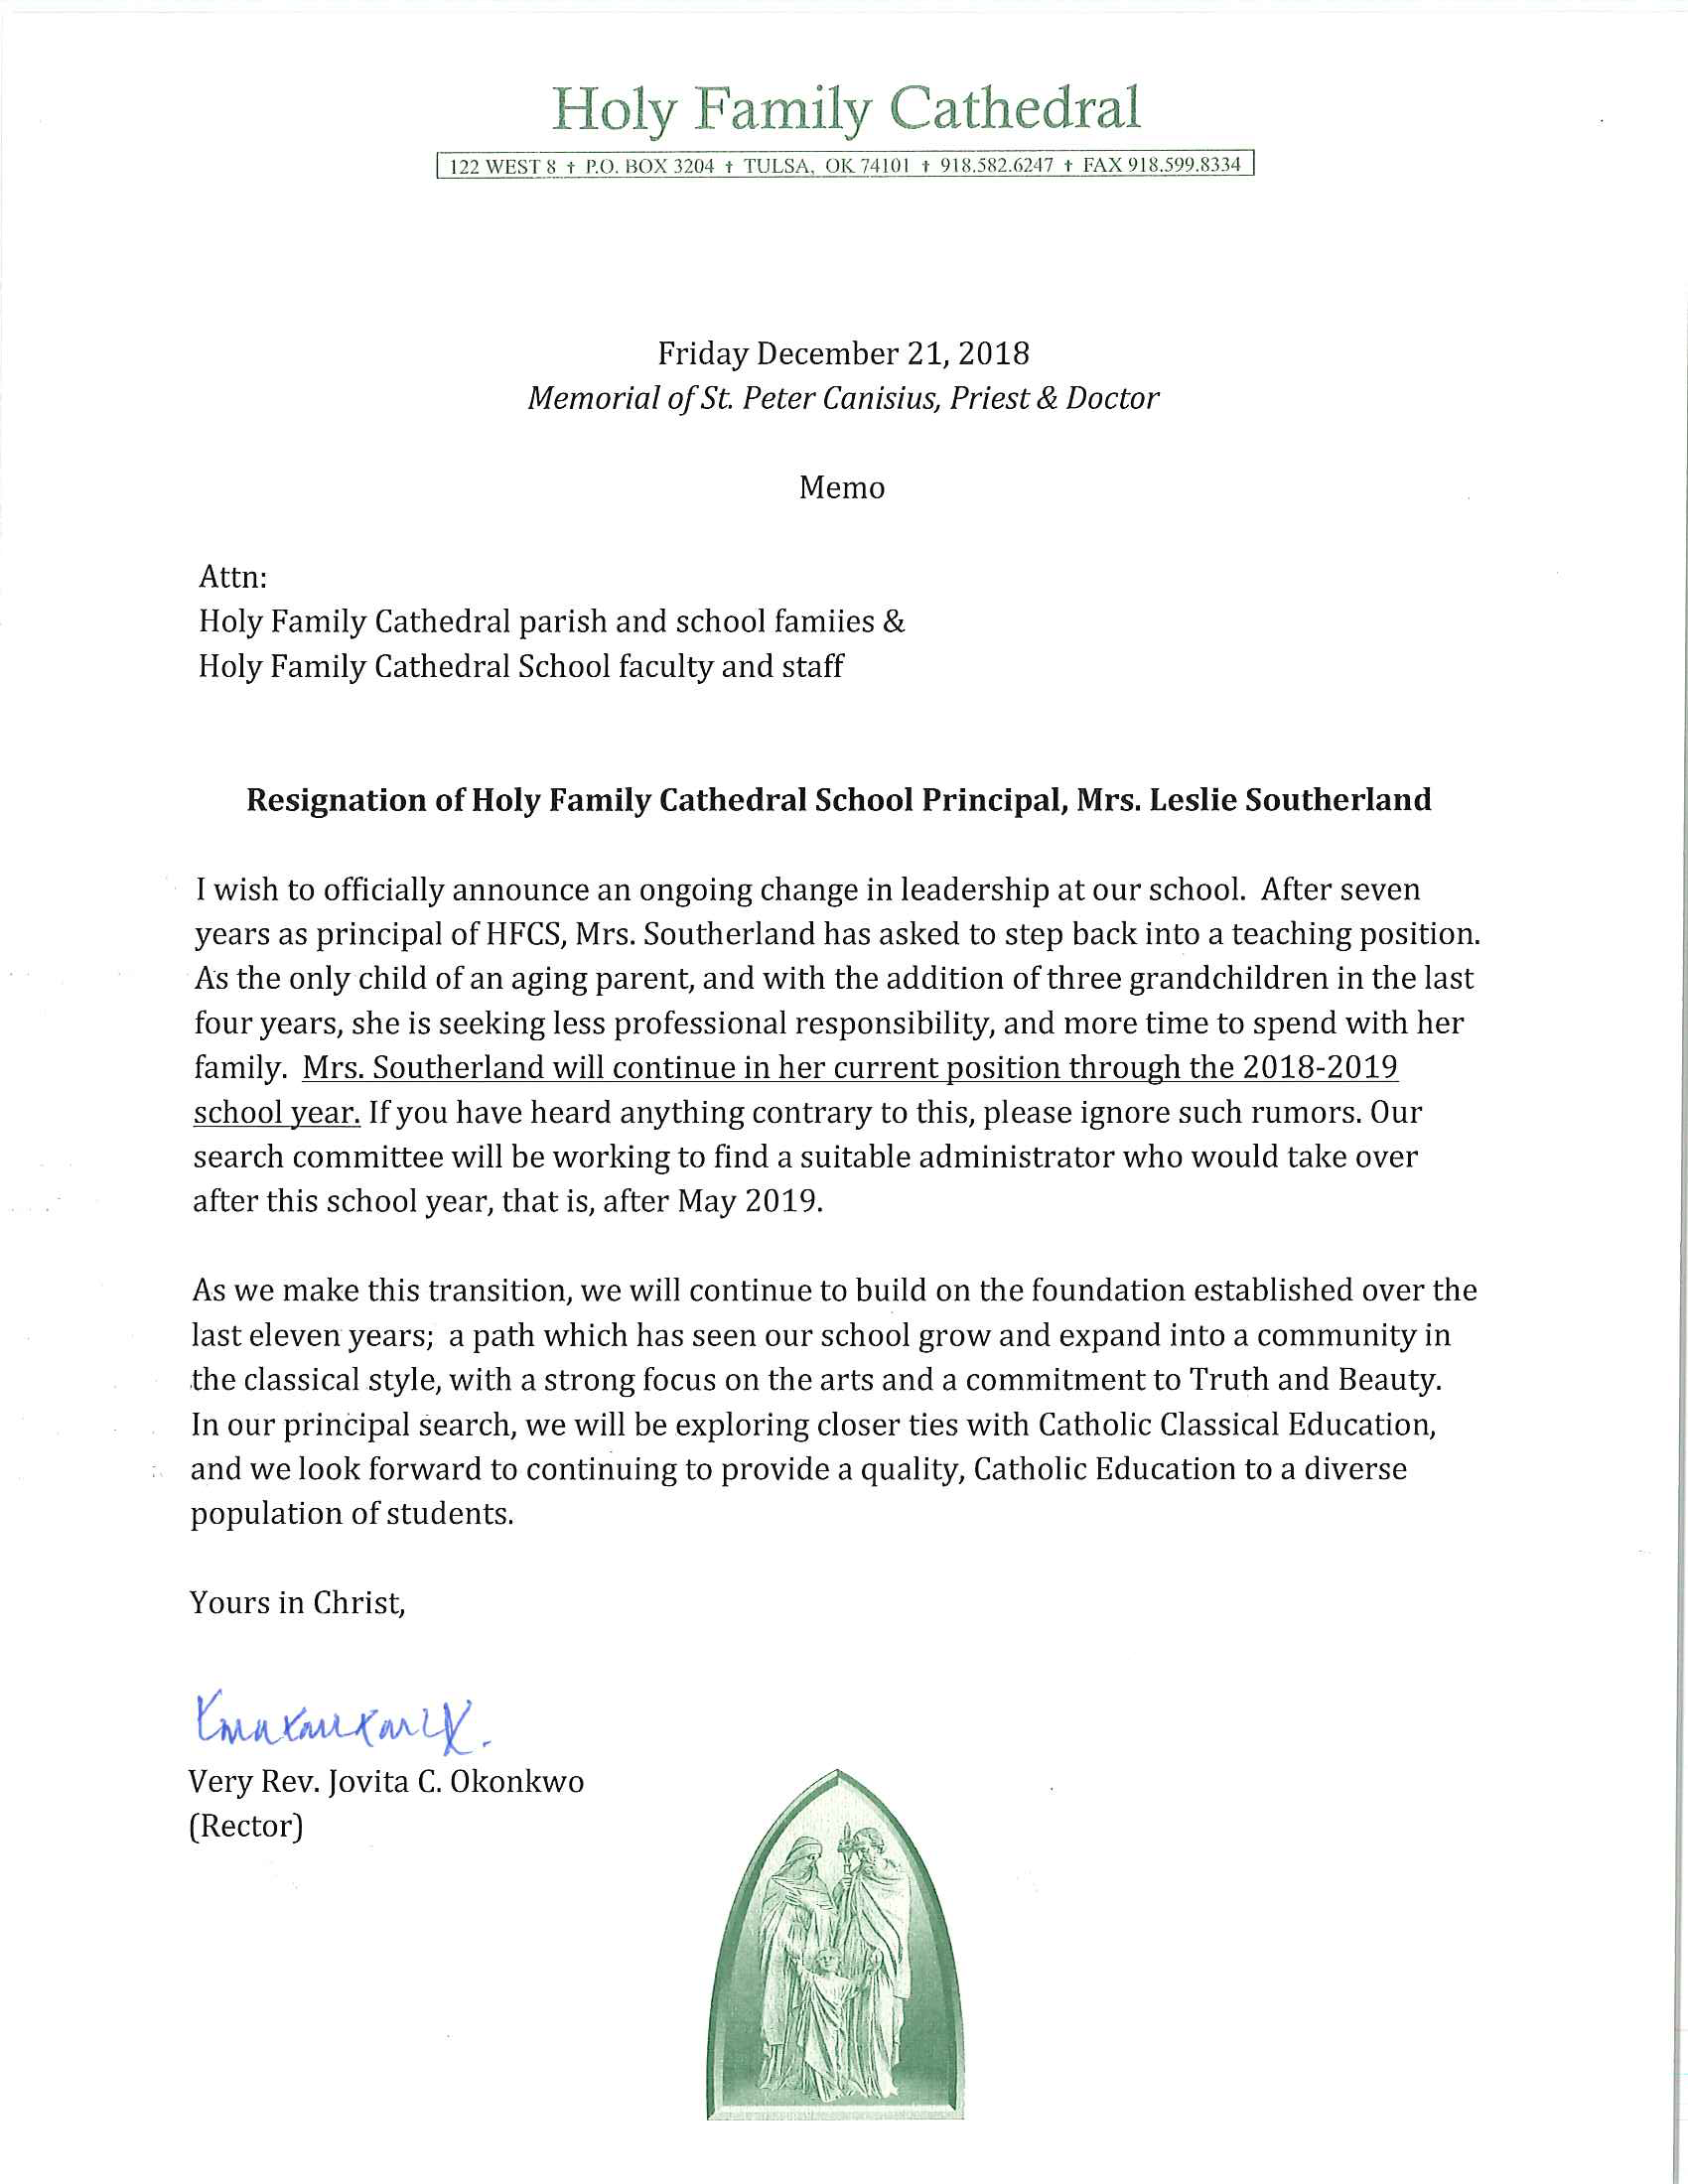 Resignation of Mrs. Southerland.png